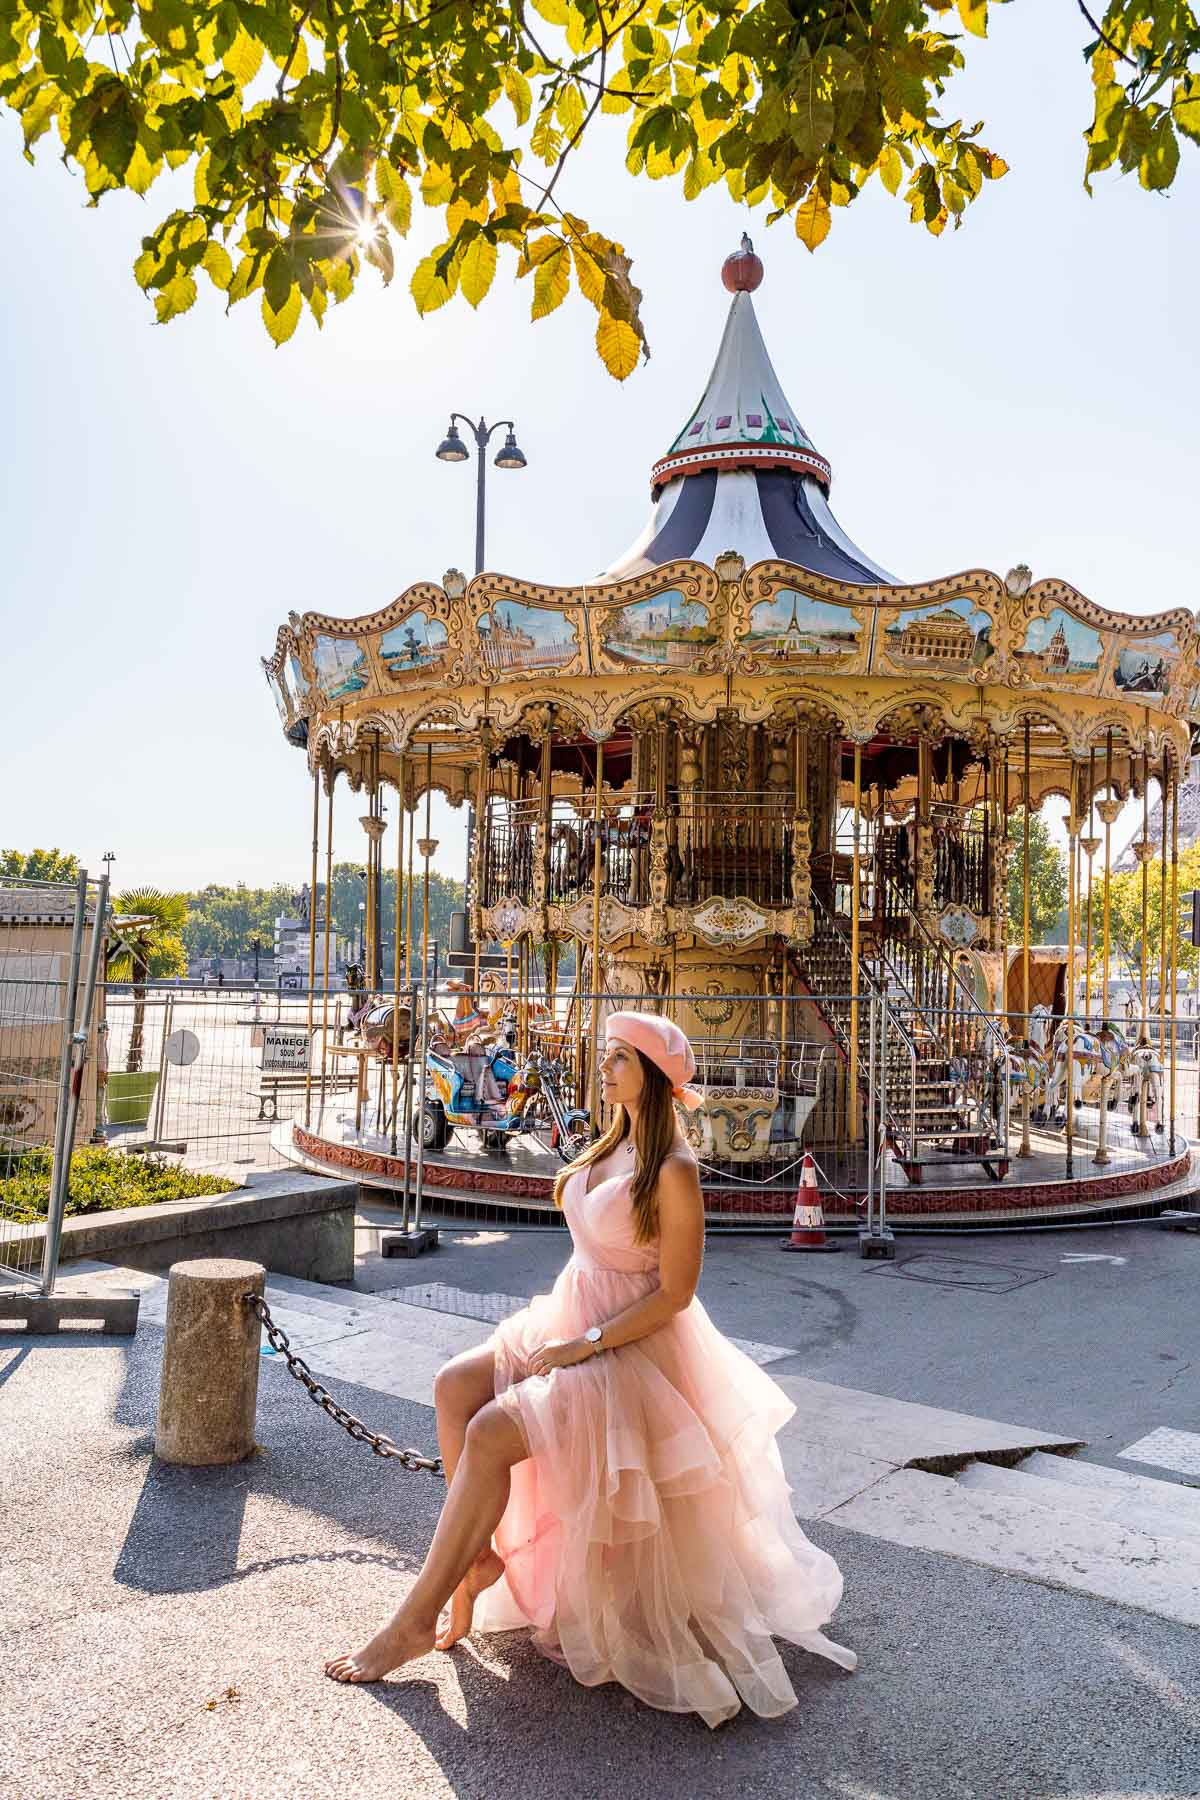 Girl in a pink dress sitting in front of a carousel near Trocadero in Paris